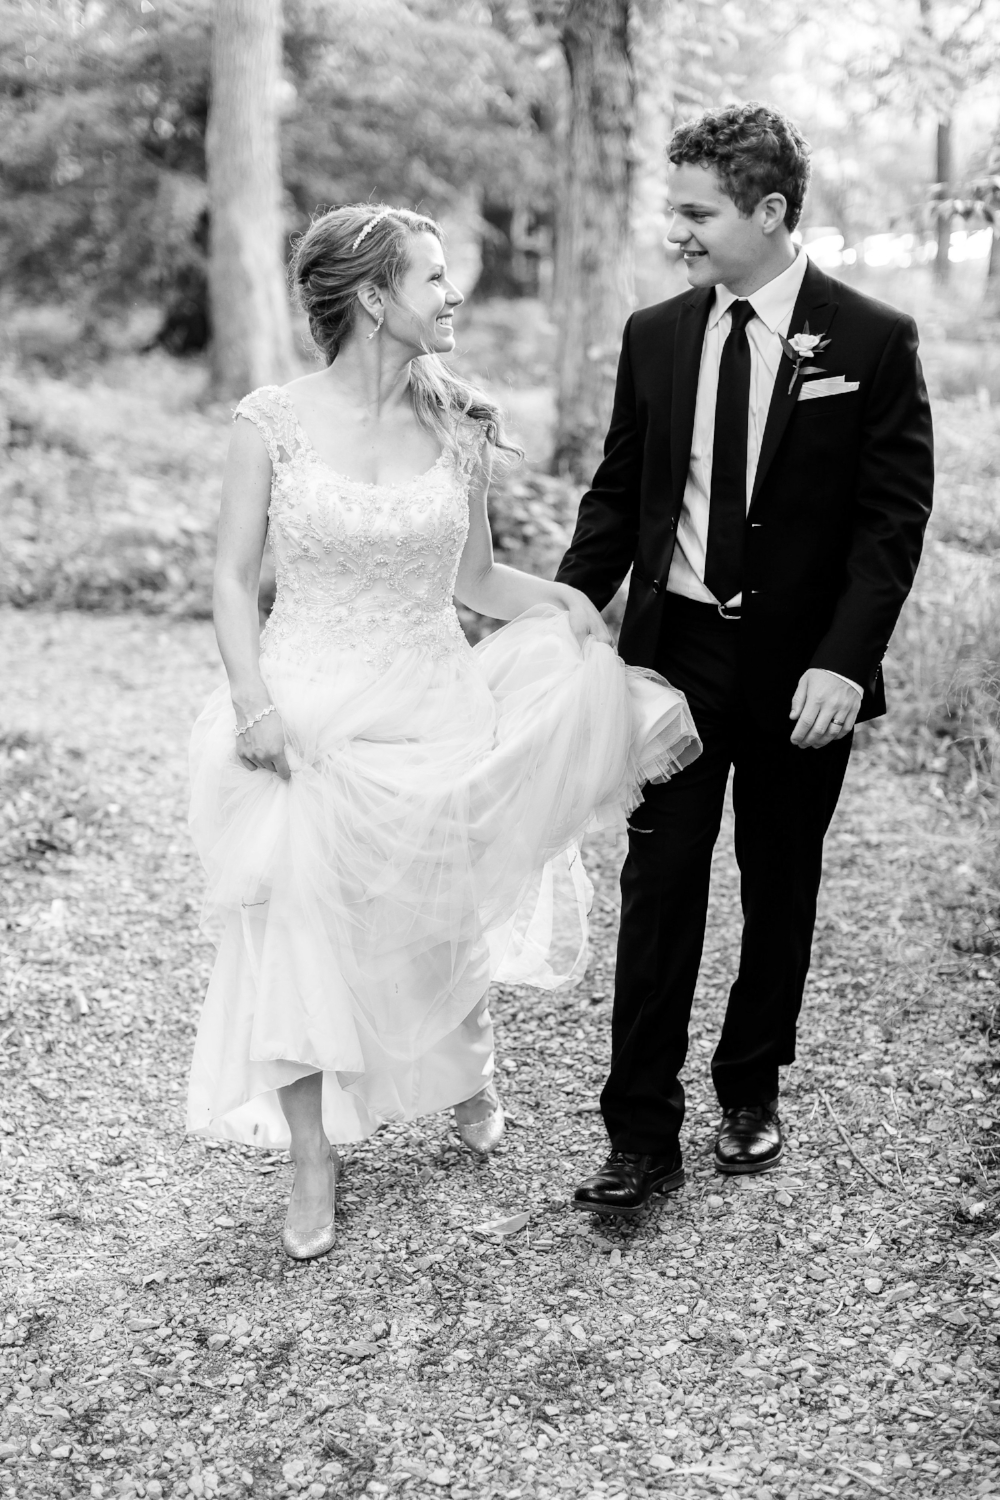 Here I am on my wedding day with my husband David (Image by:    Jenny Haas   )